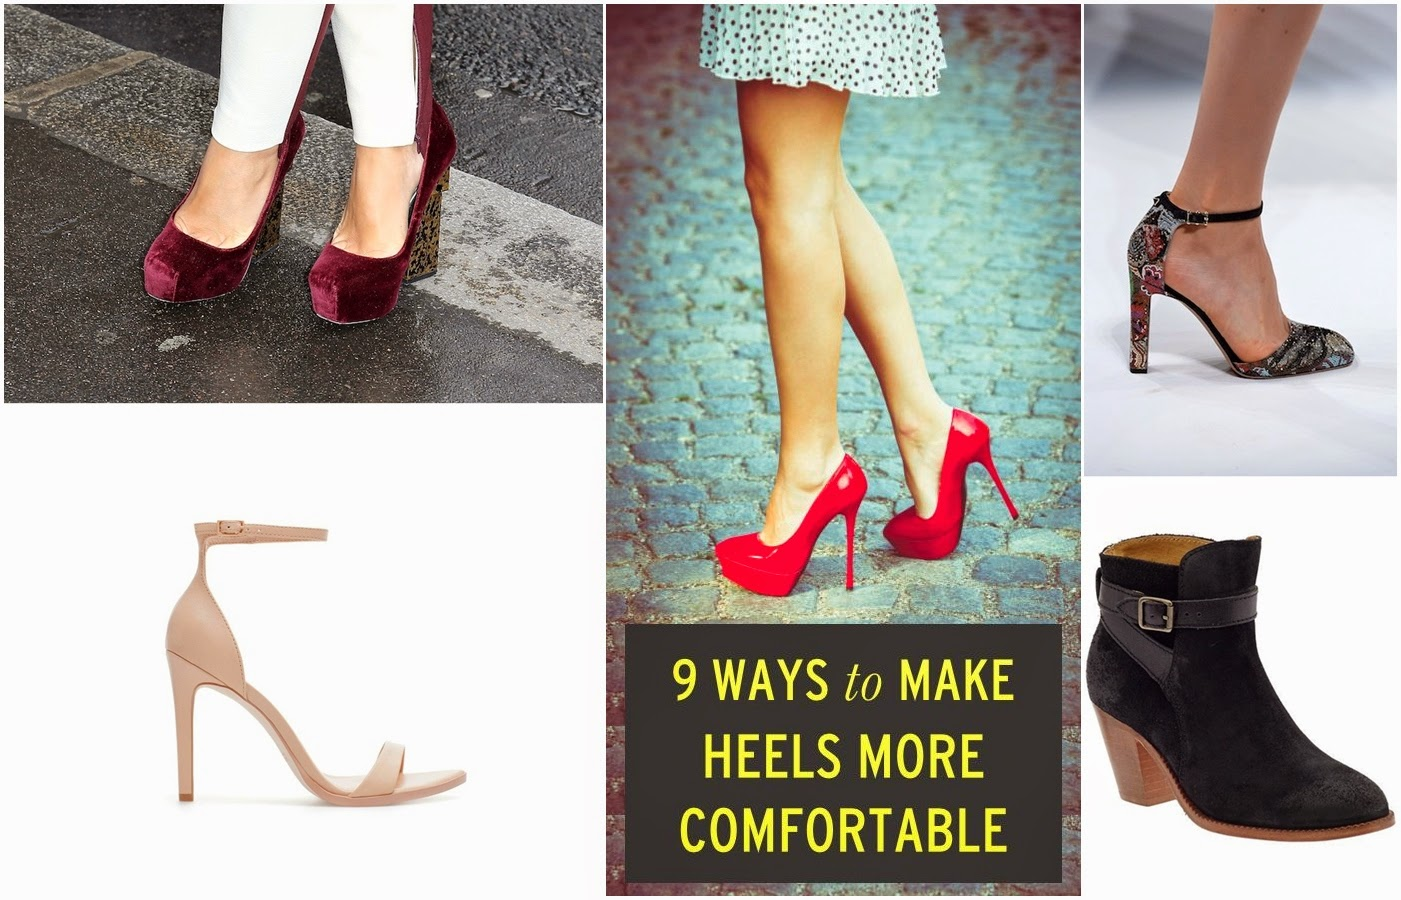 8 Ways to Make High Heel Shoes Comfortable